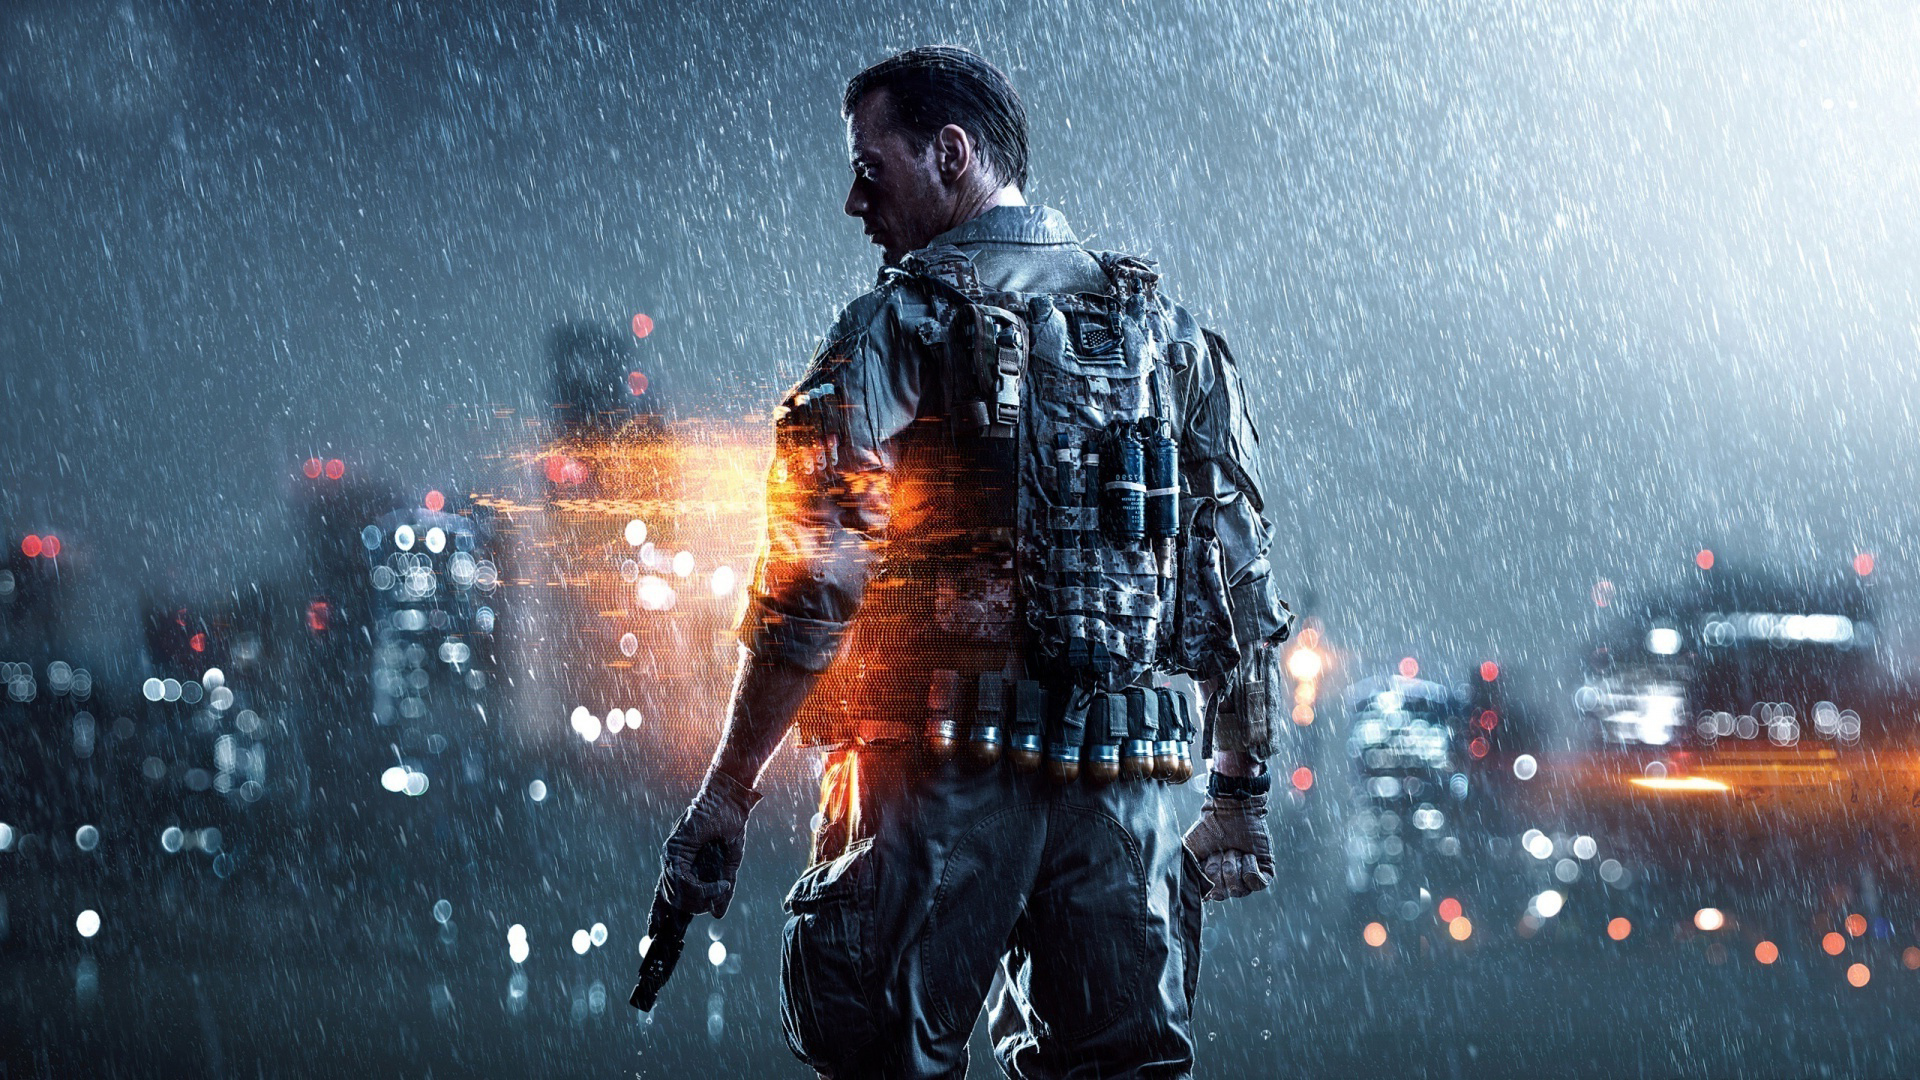 battlefield 4 wallpaper 1920x1080 52189